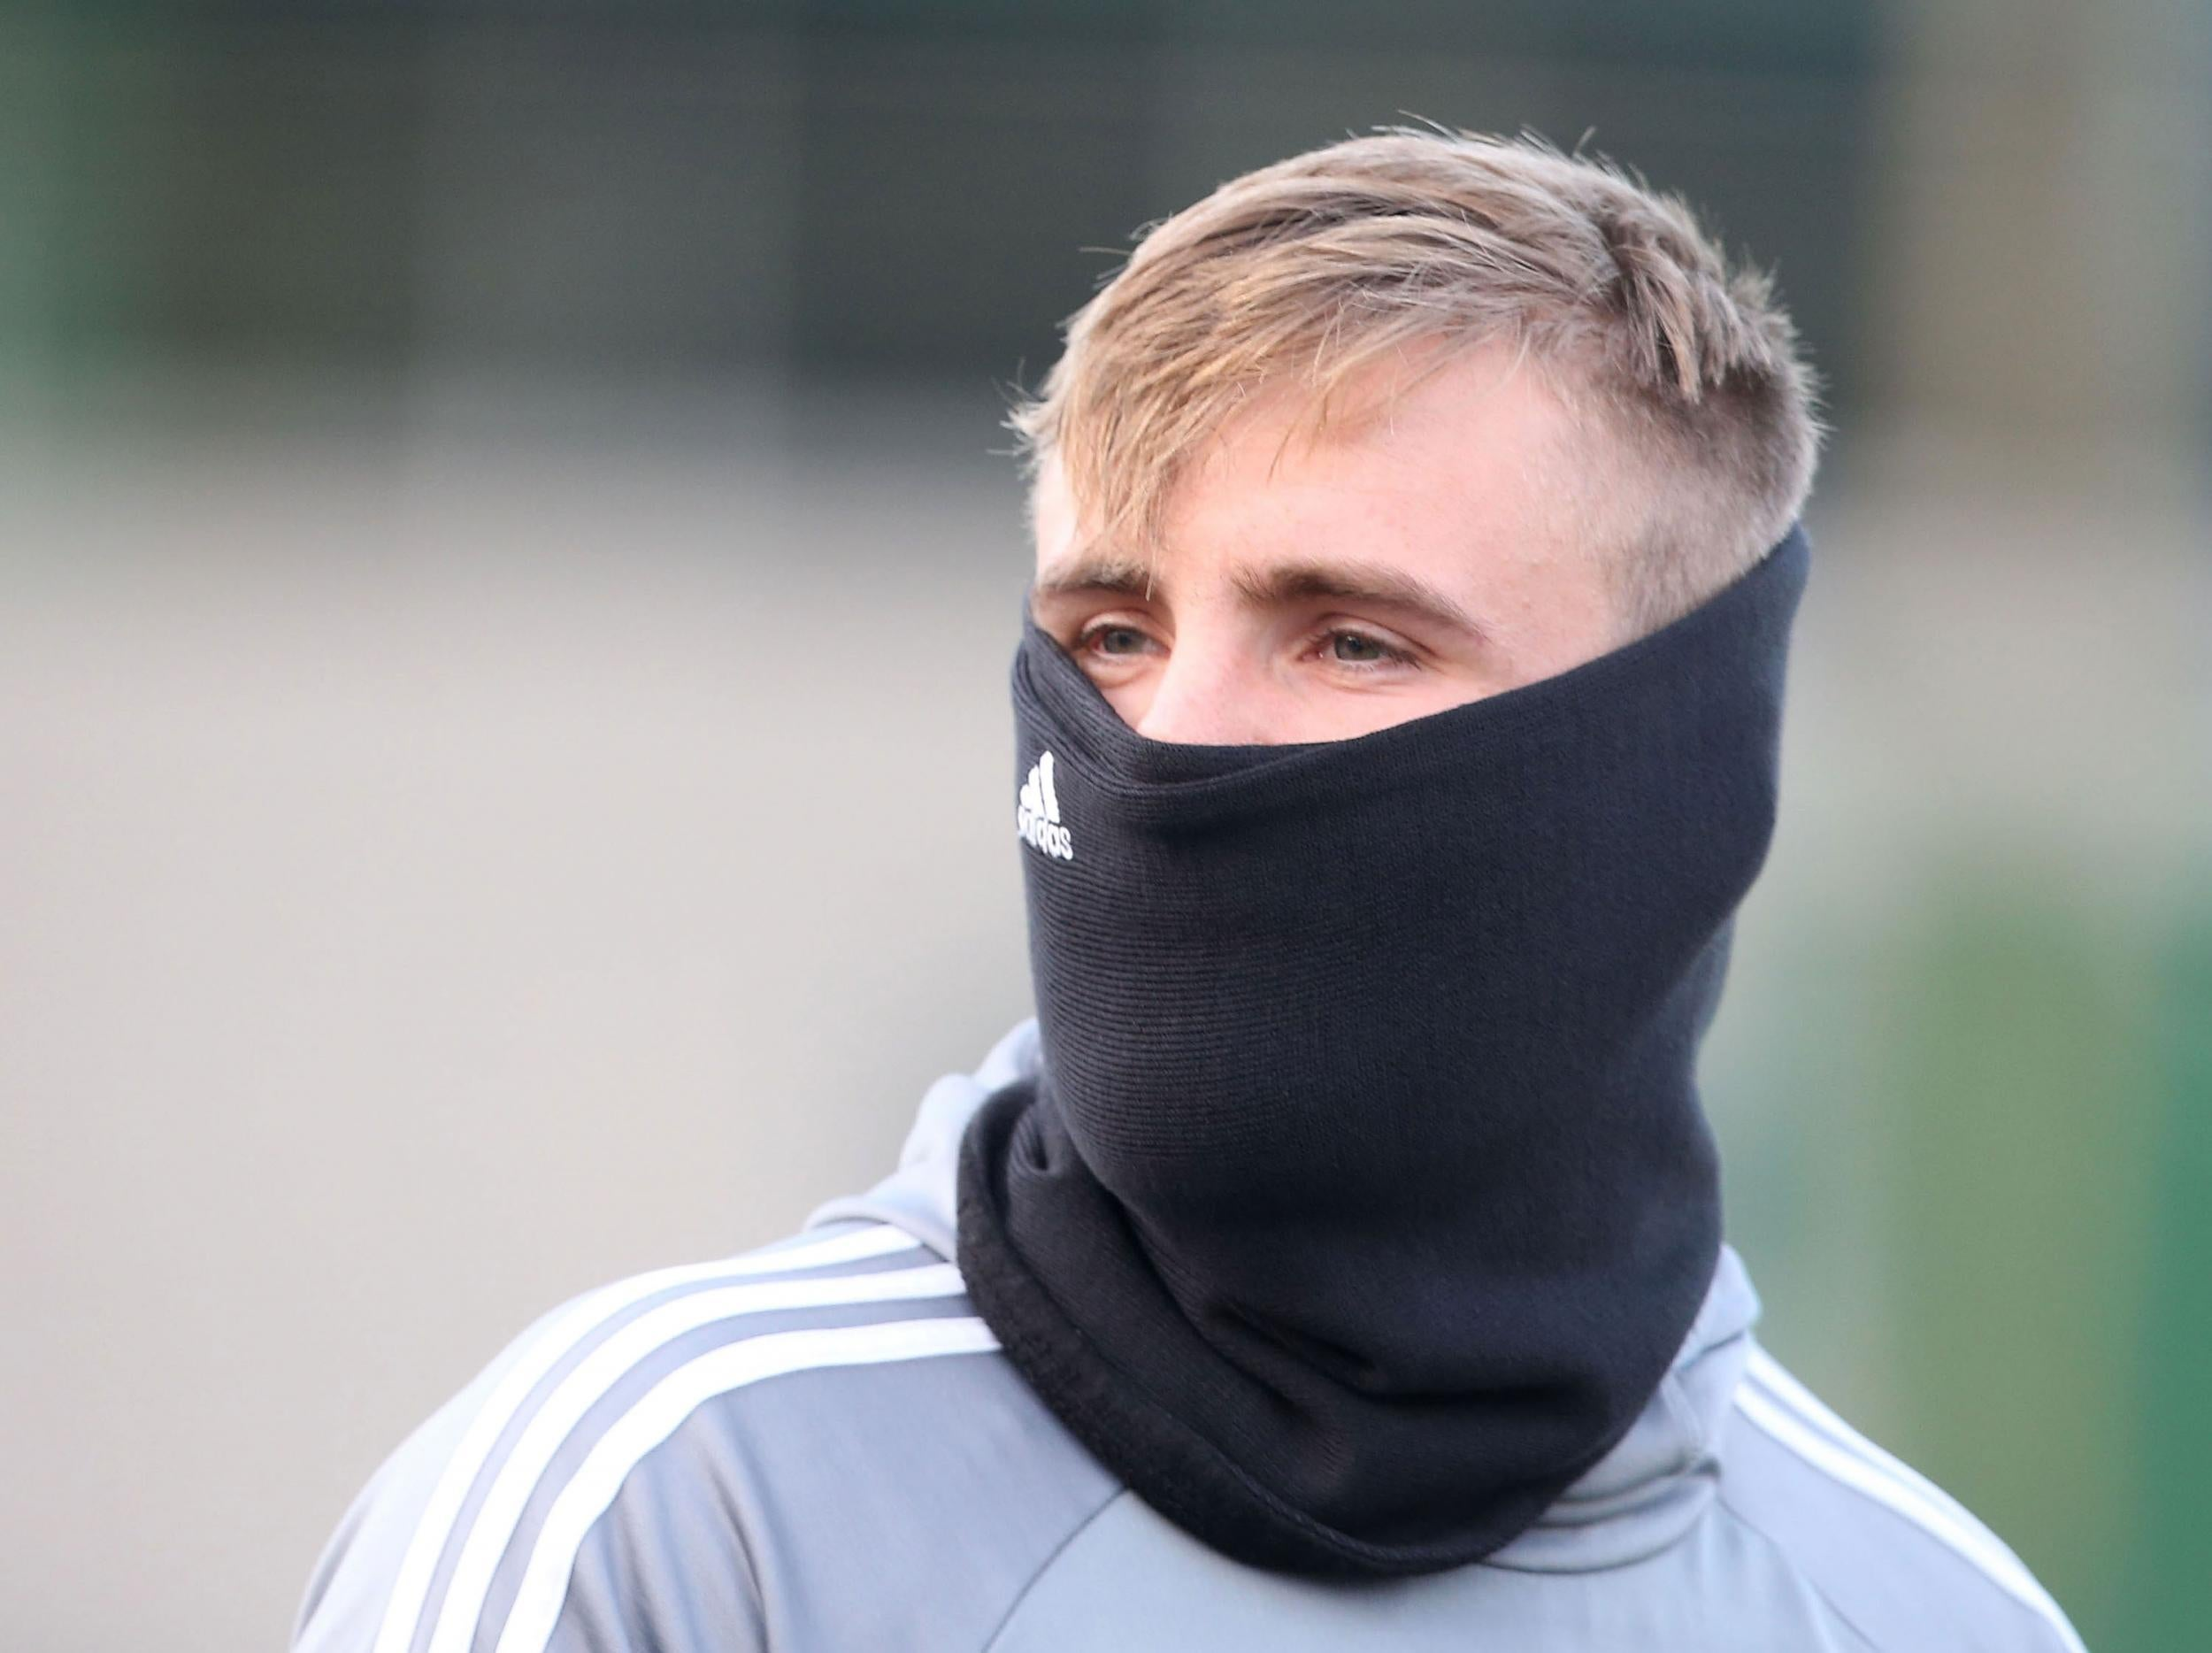 Manchester United ready to sell Luke Shaw for £20m in January